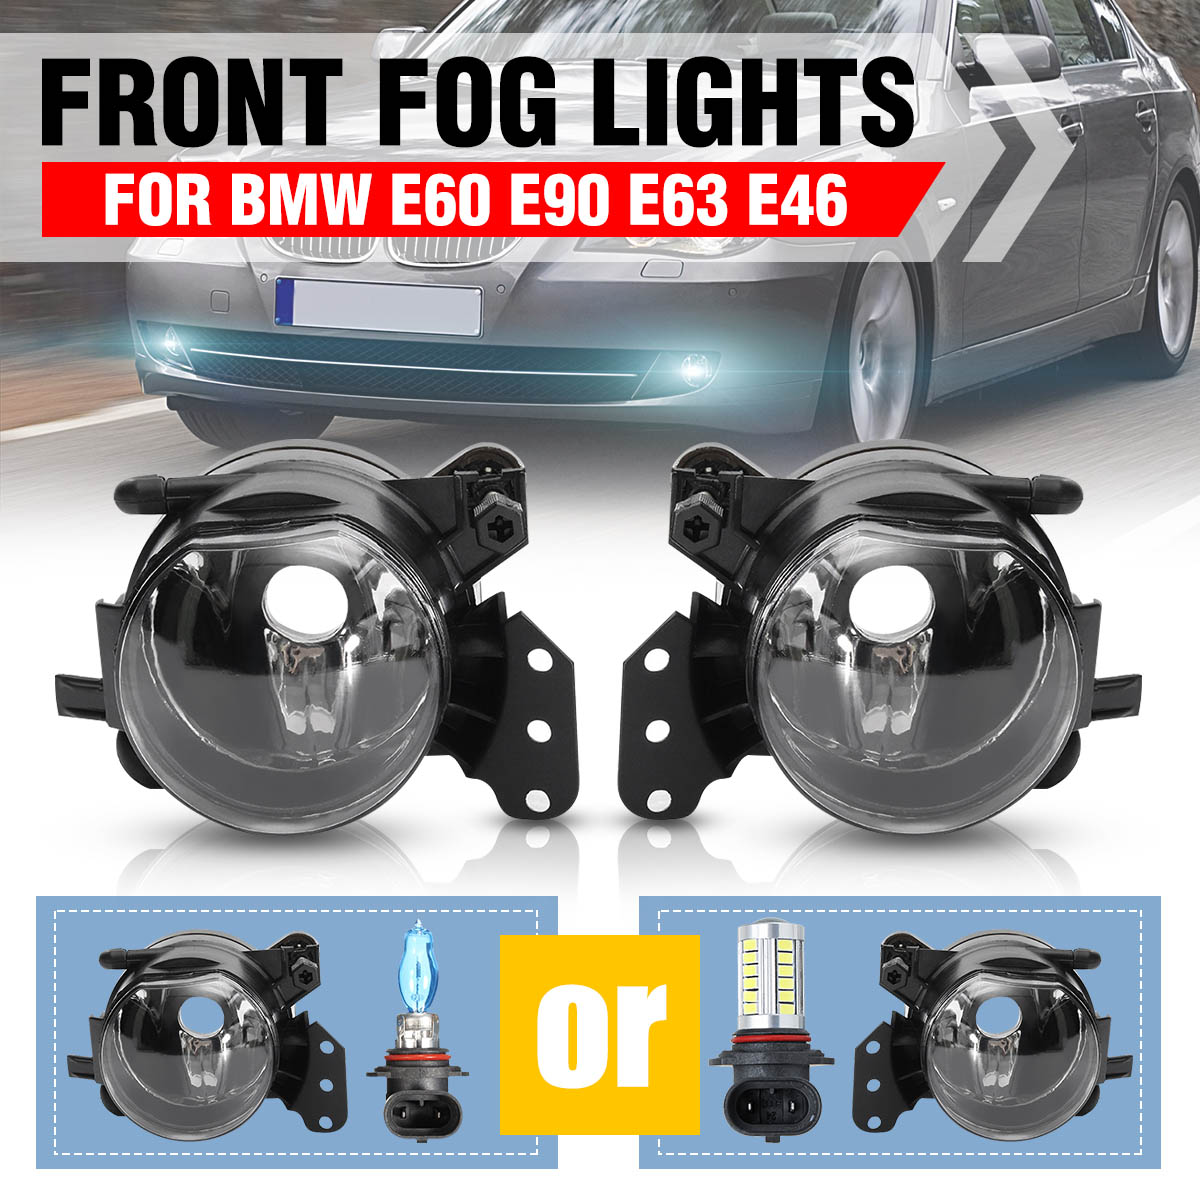 1Pair Fog <font><b>Light</b></font> Assembly Car <font><b>Front</b></font> Fog <font><b>Lights</b></font> Lamps Housing Lens Clear No Bulbs For <font><b>BMW</b></font> E60 <font><b>E90</b></font> E63 E46 323i 325i 525i image